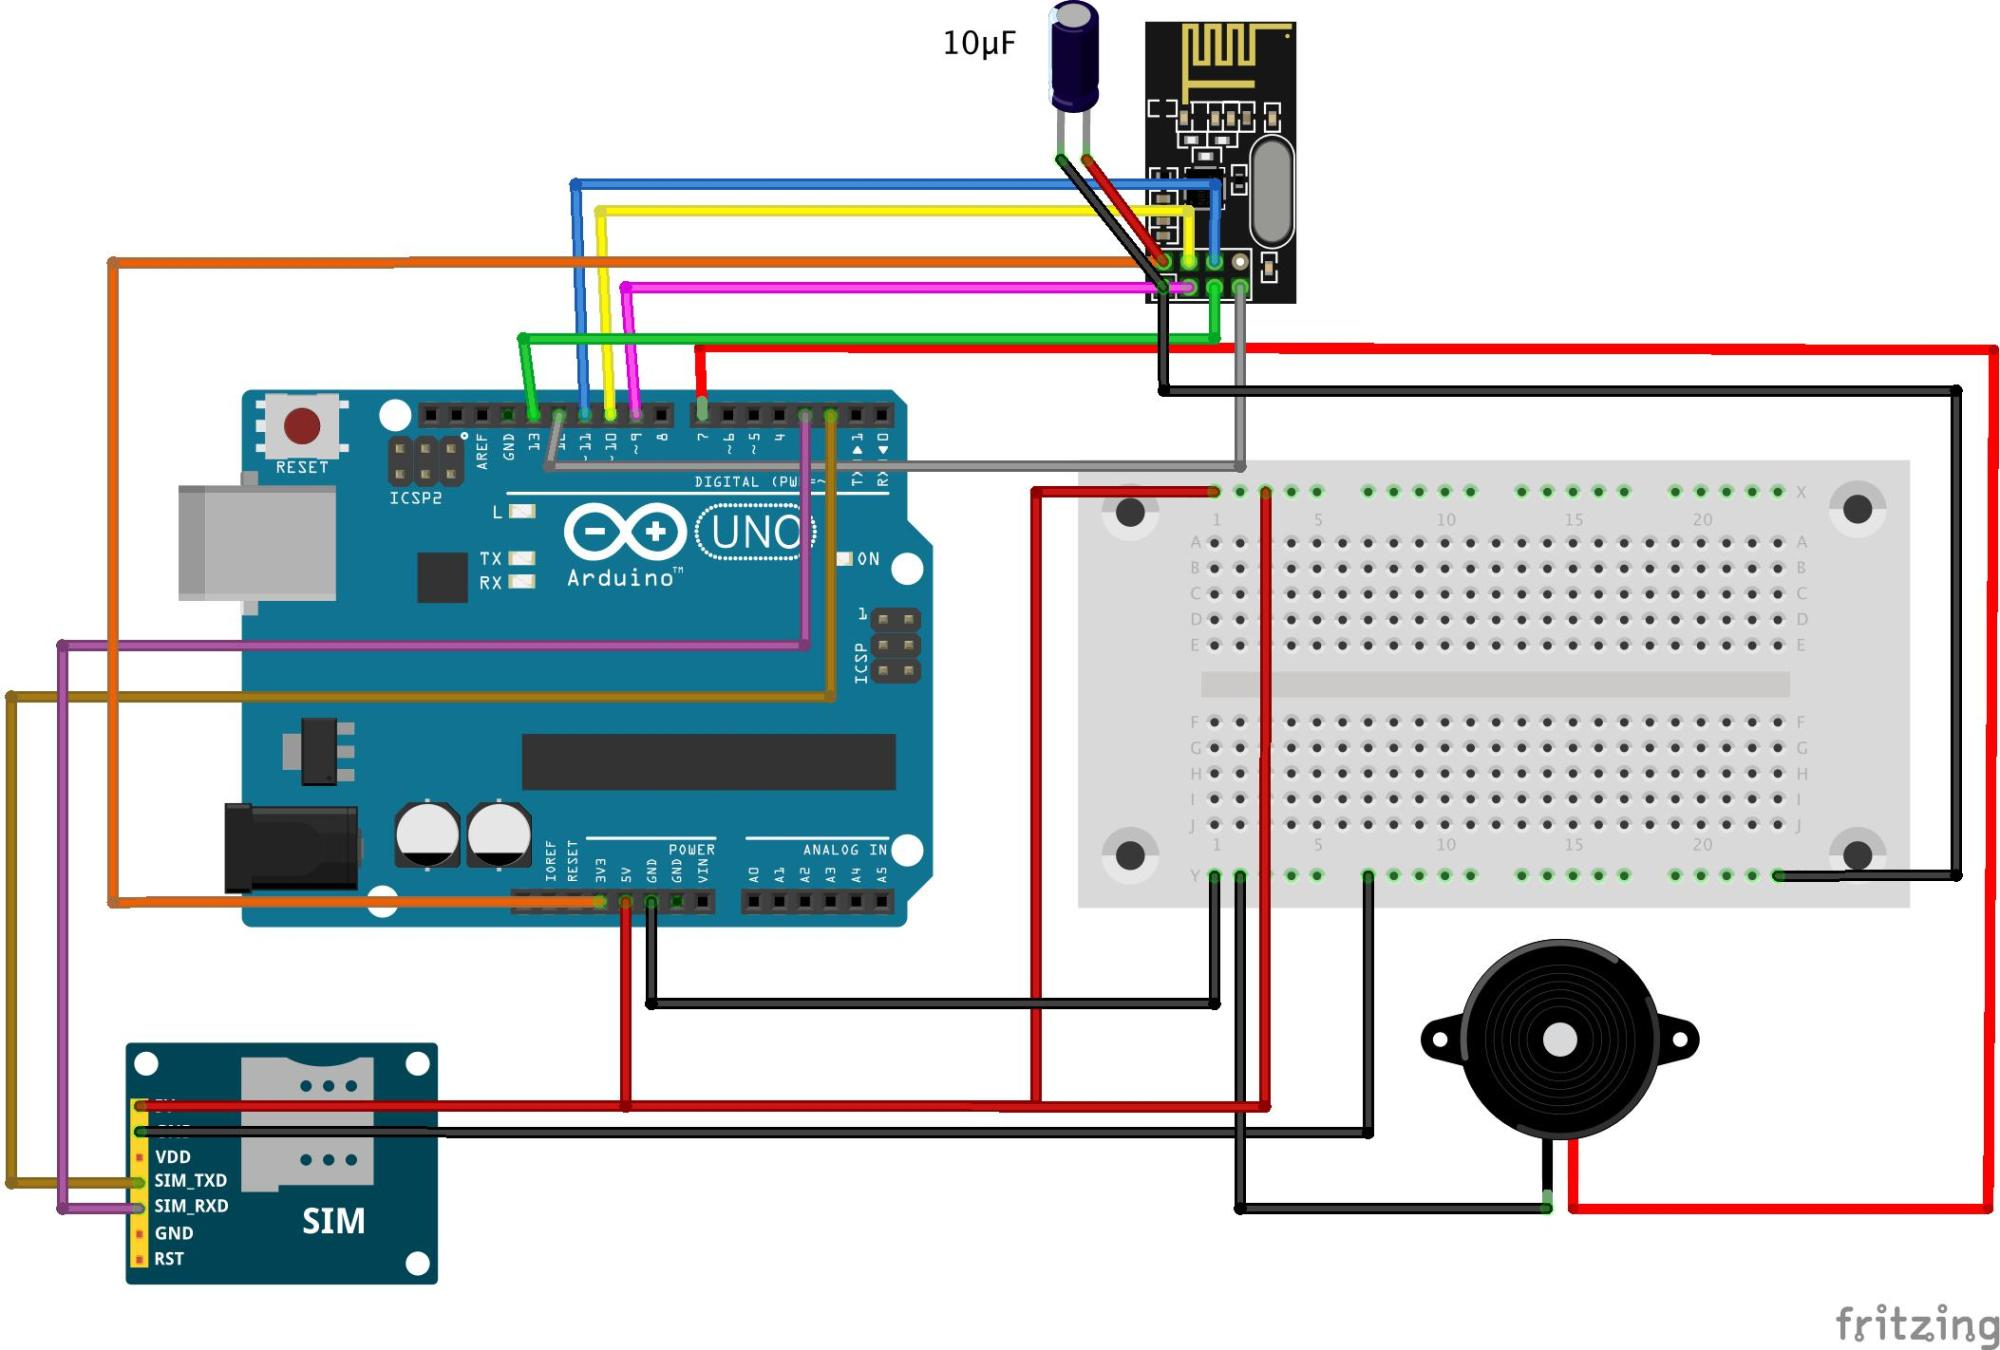 hight resolution of as you can make out from the above sketch i have connected the tx and rx of the sim900a module with digital pins 2 and 3 of the arduino respectively